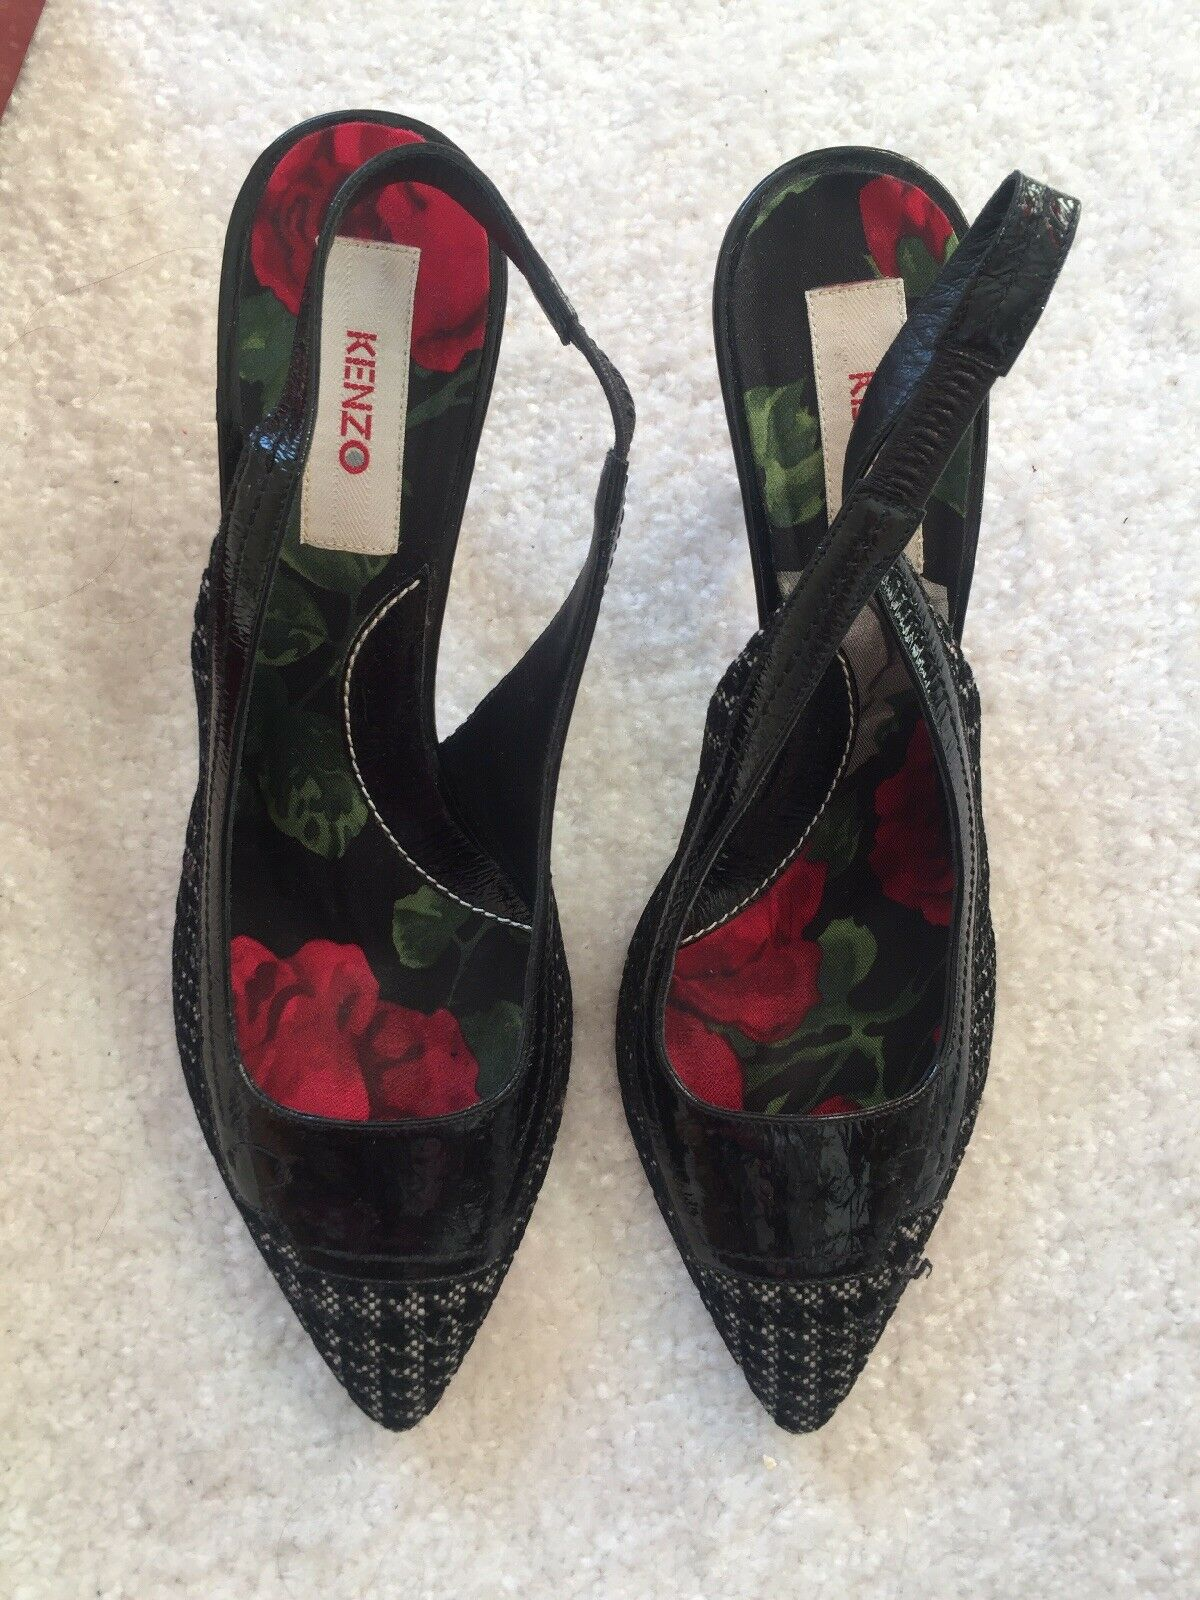 Kenzo chaussures noir with heels Taille 40 7